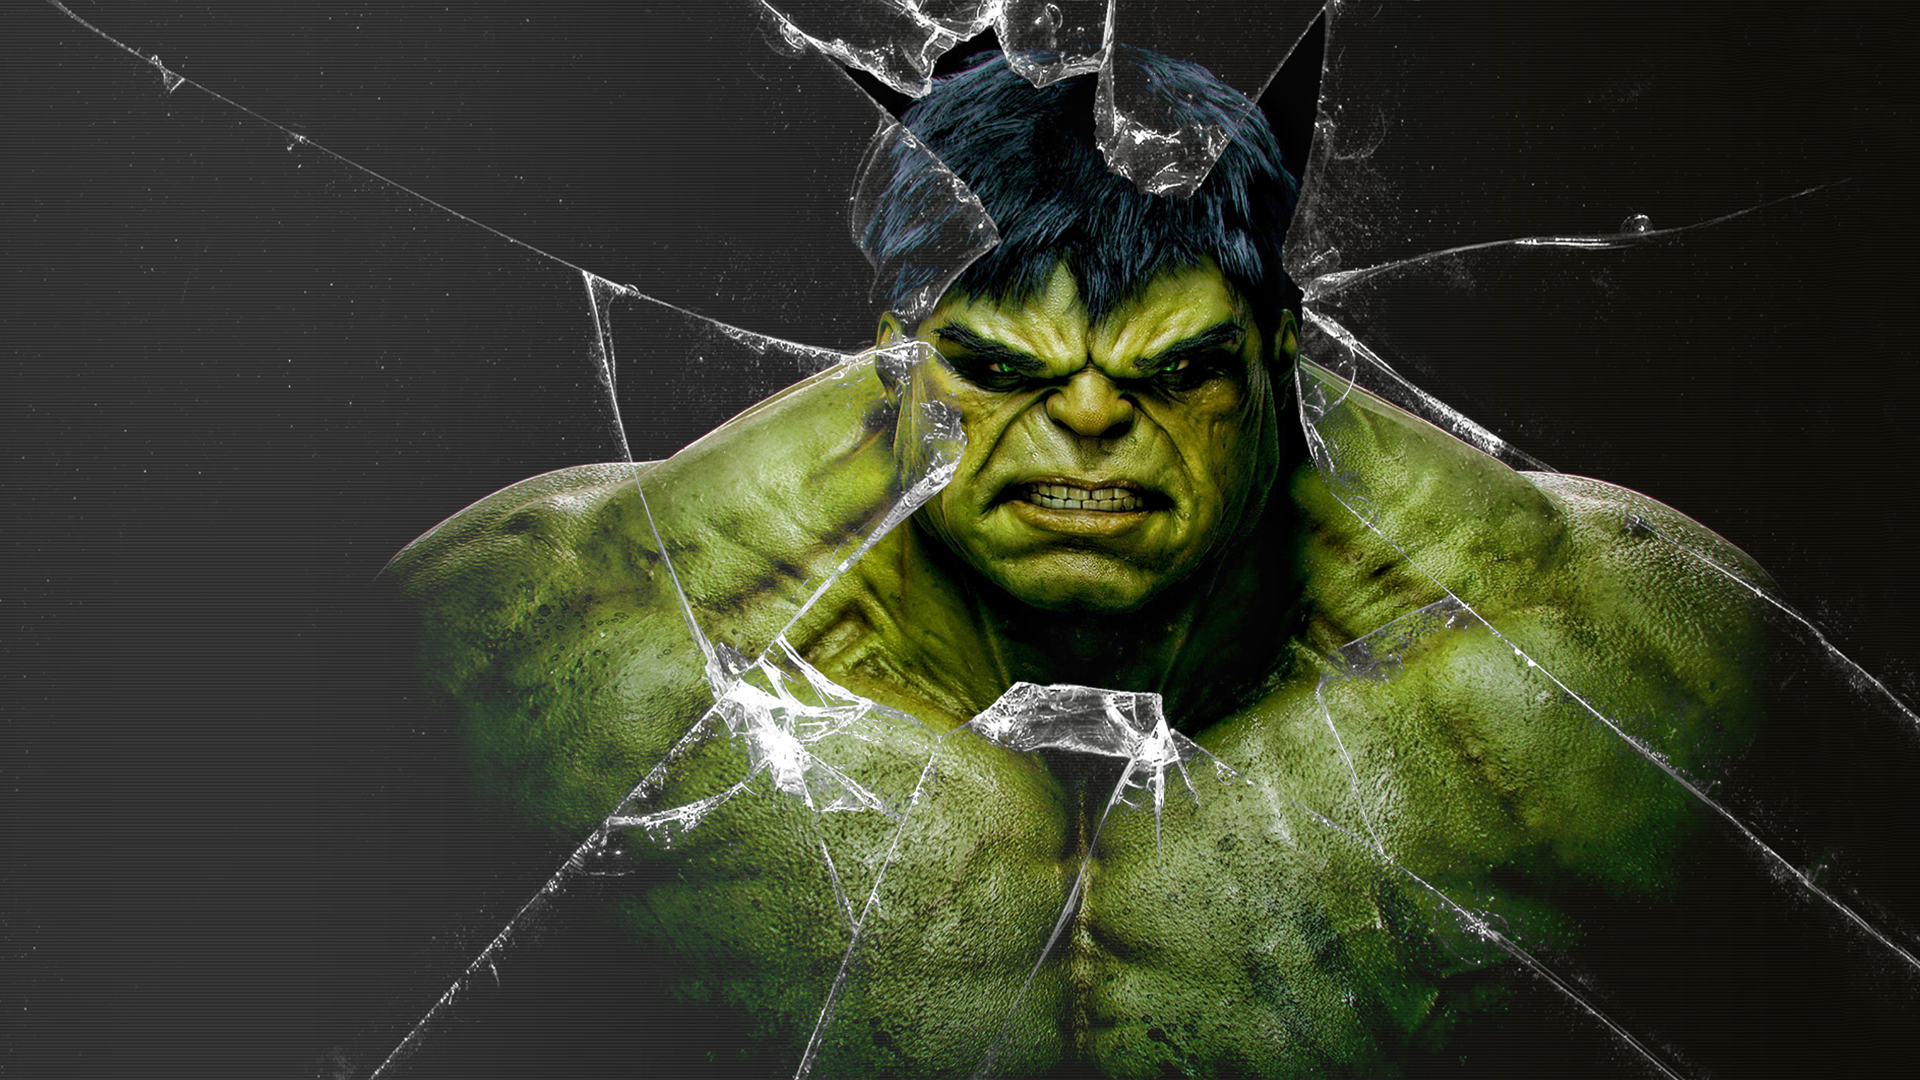 Hulk Face Broken Glass